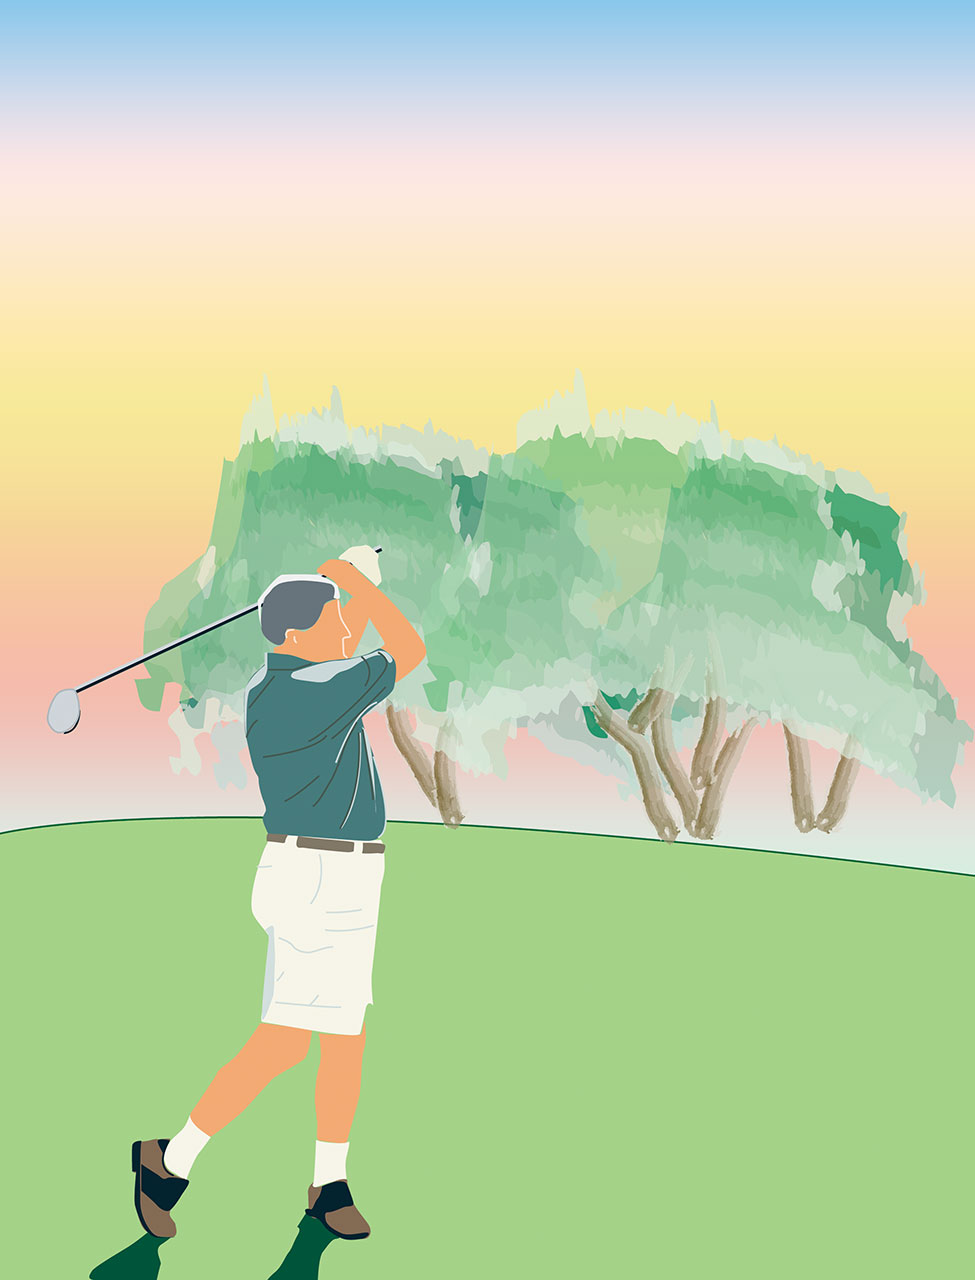 A vector illustration of a golfer on a golf course used in a concept pitch design for a retirement community marketing project.